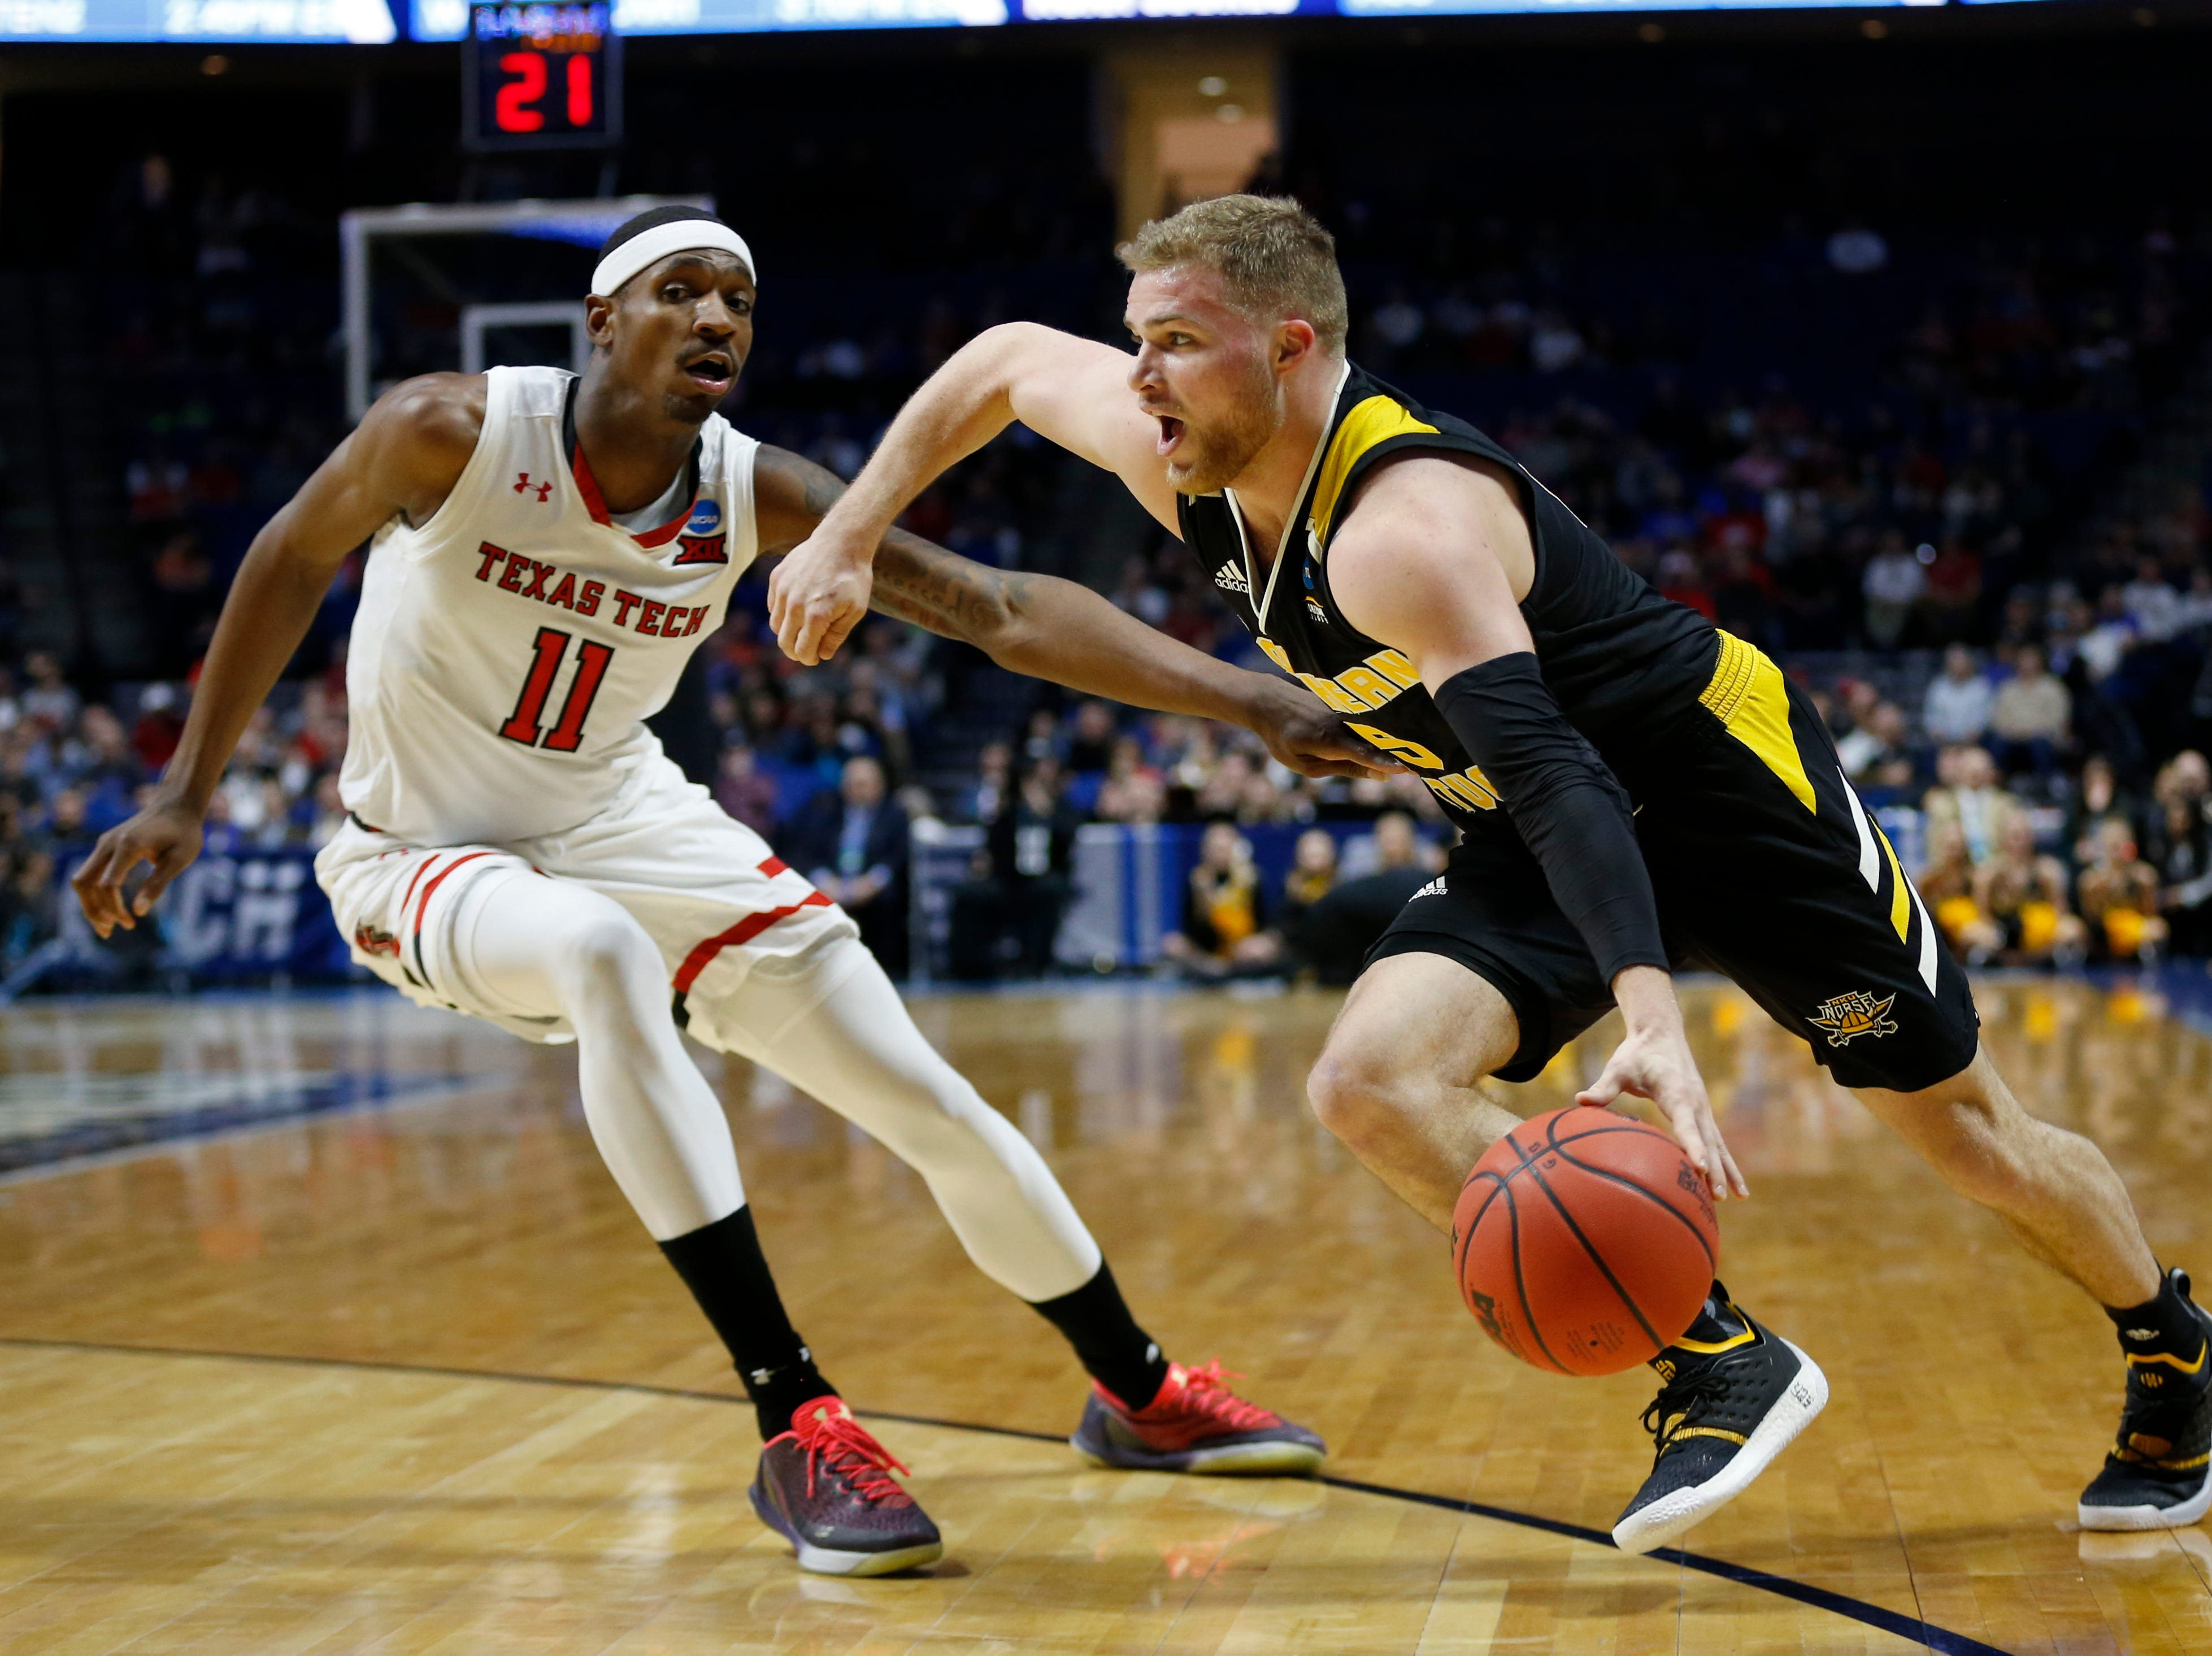 Northern Kentucky Norse guard Tyler Sharpe (15) drives against Texas Tech Red Raiders forward Tariq Owens (11) in the first half of the NCAA Tournament First Round game between the 14-seeded Northern Kentucky Norse and the 3-seeded Texas Tech Red Raiders the BOK Center in downtown Tulsa on Friday, March 22, 2019. Texas Tech led 30-26 at halftime.